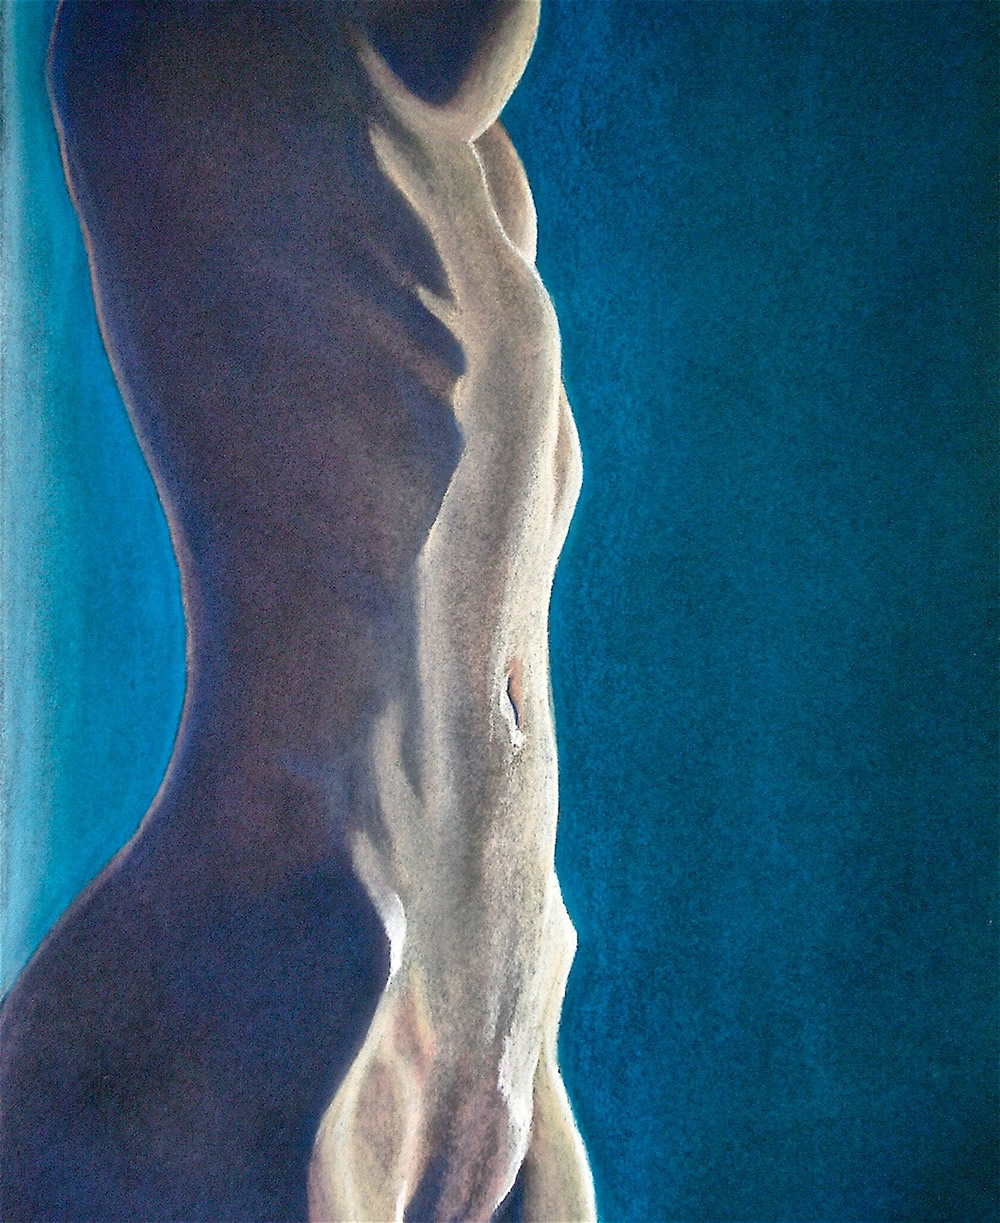 Chrissy Thirlaway, Dance Till You Drop, Pastel on paper, 33x47cm